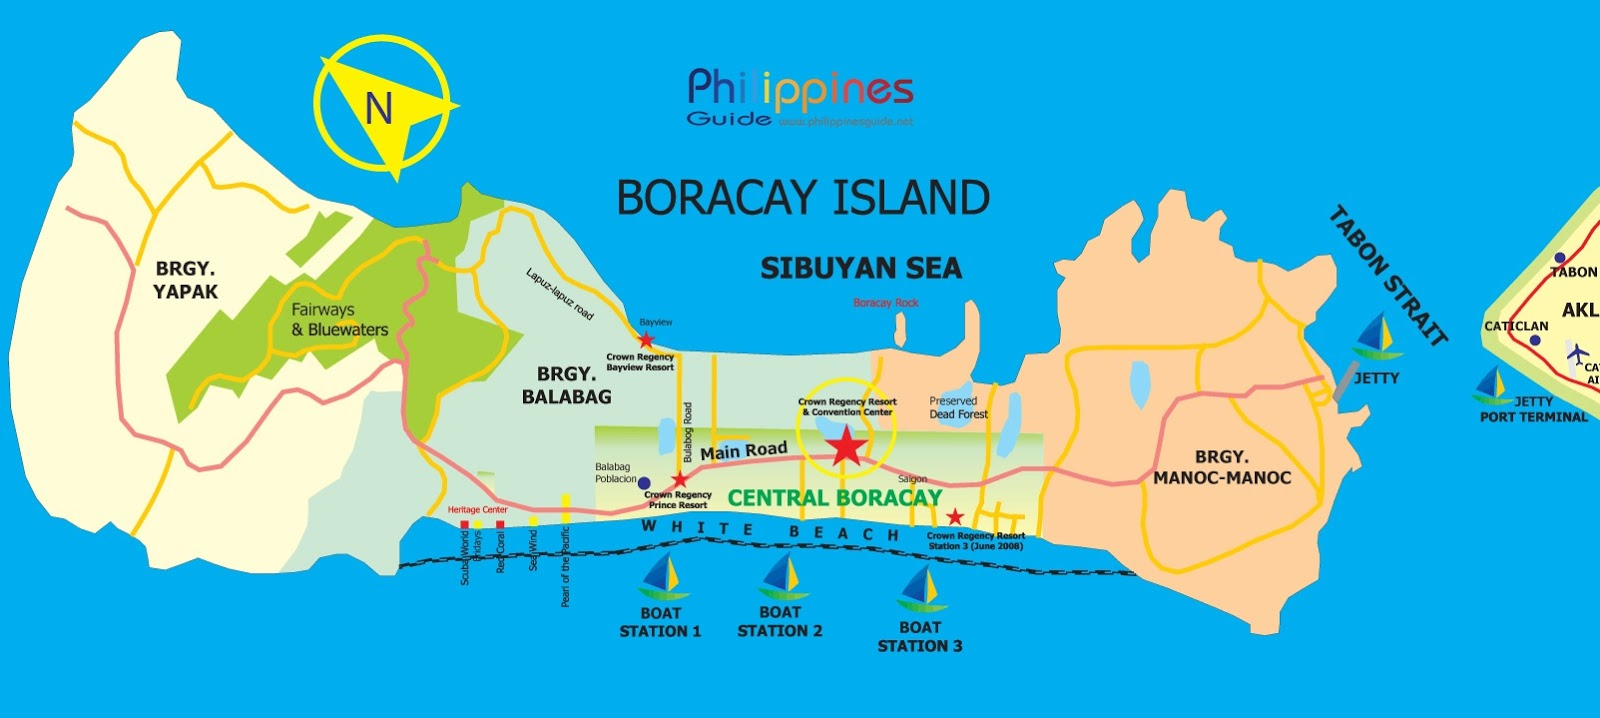 Boracay Island In The Philippines Map